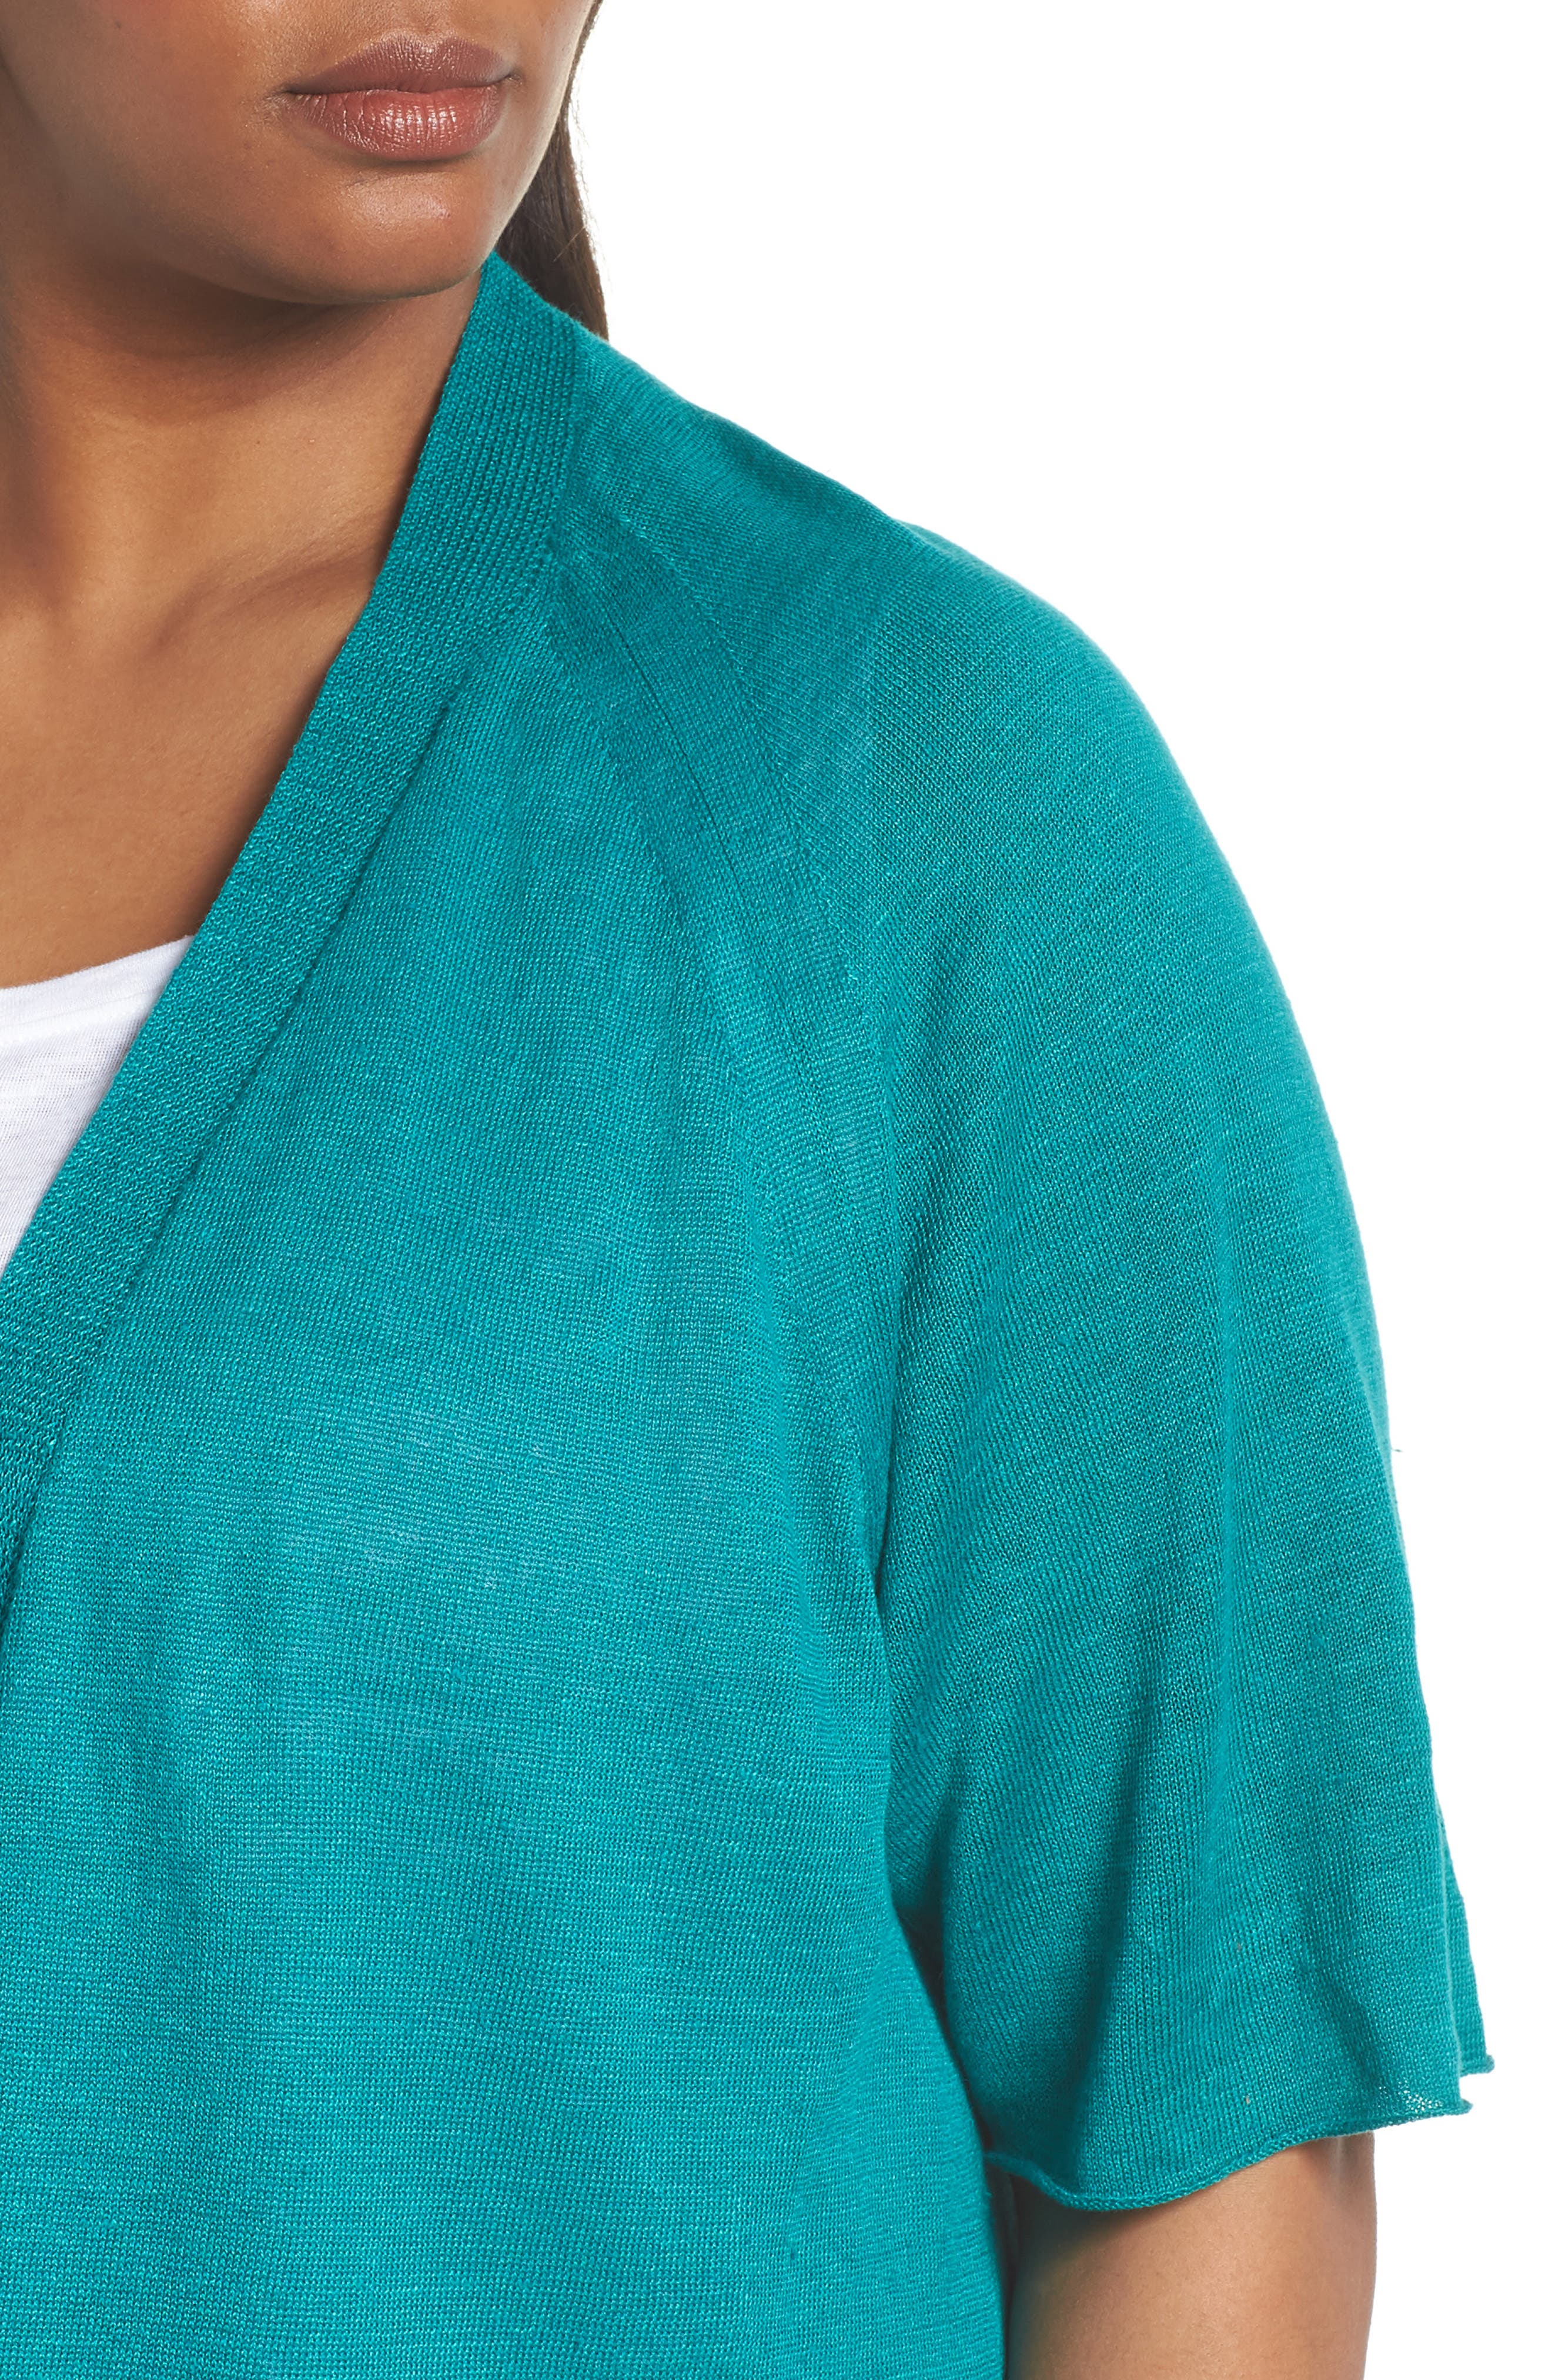 Organic Linen Cardigan,                             Alternate thumbnail 4, color,                             Turquoise